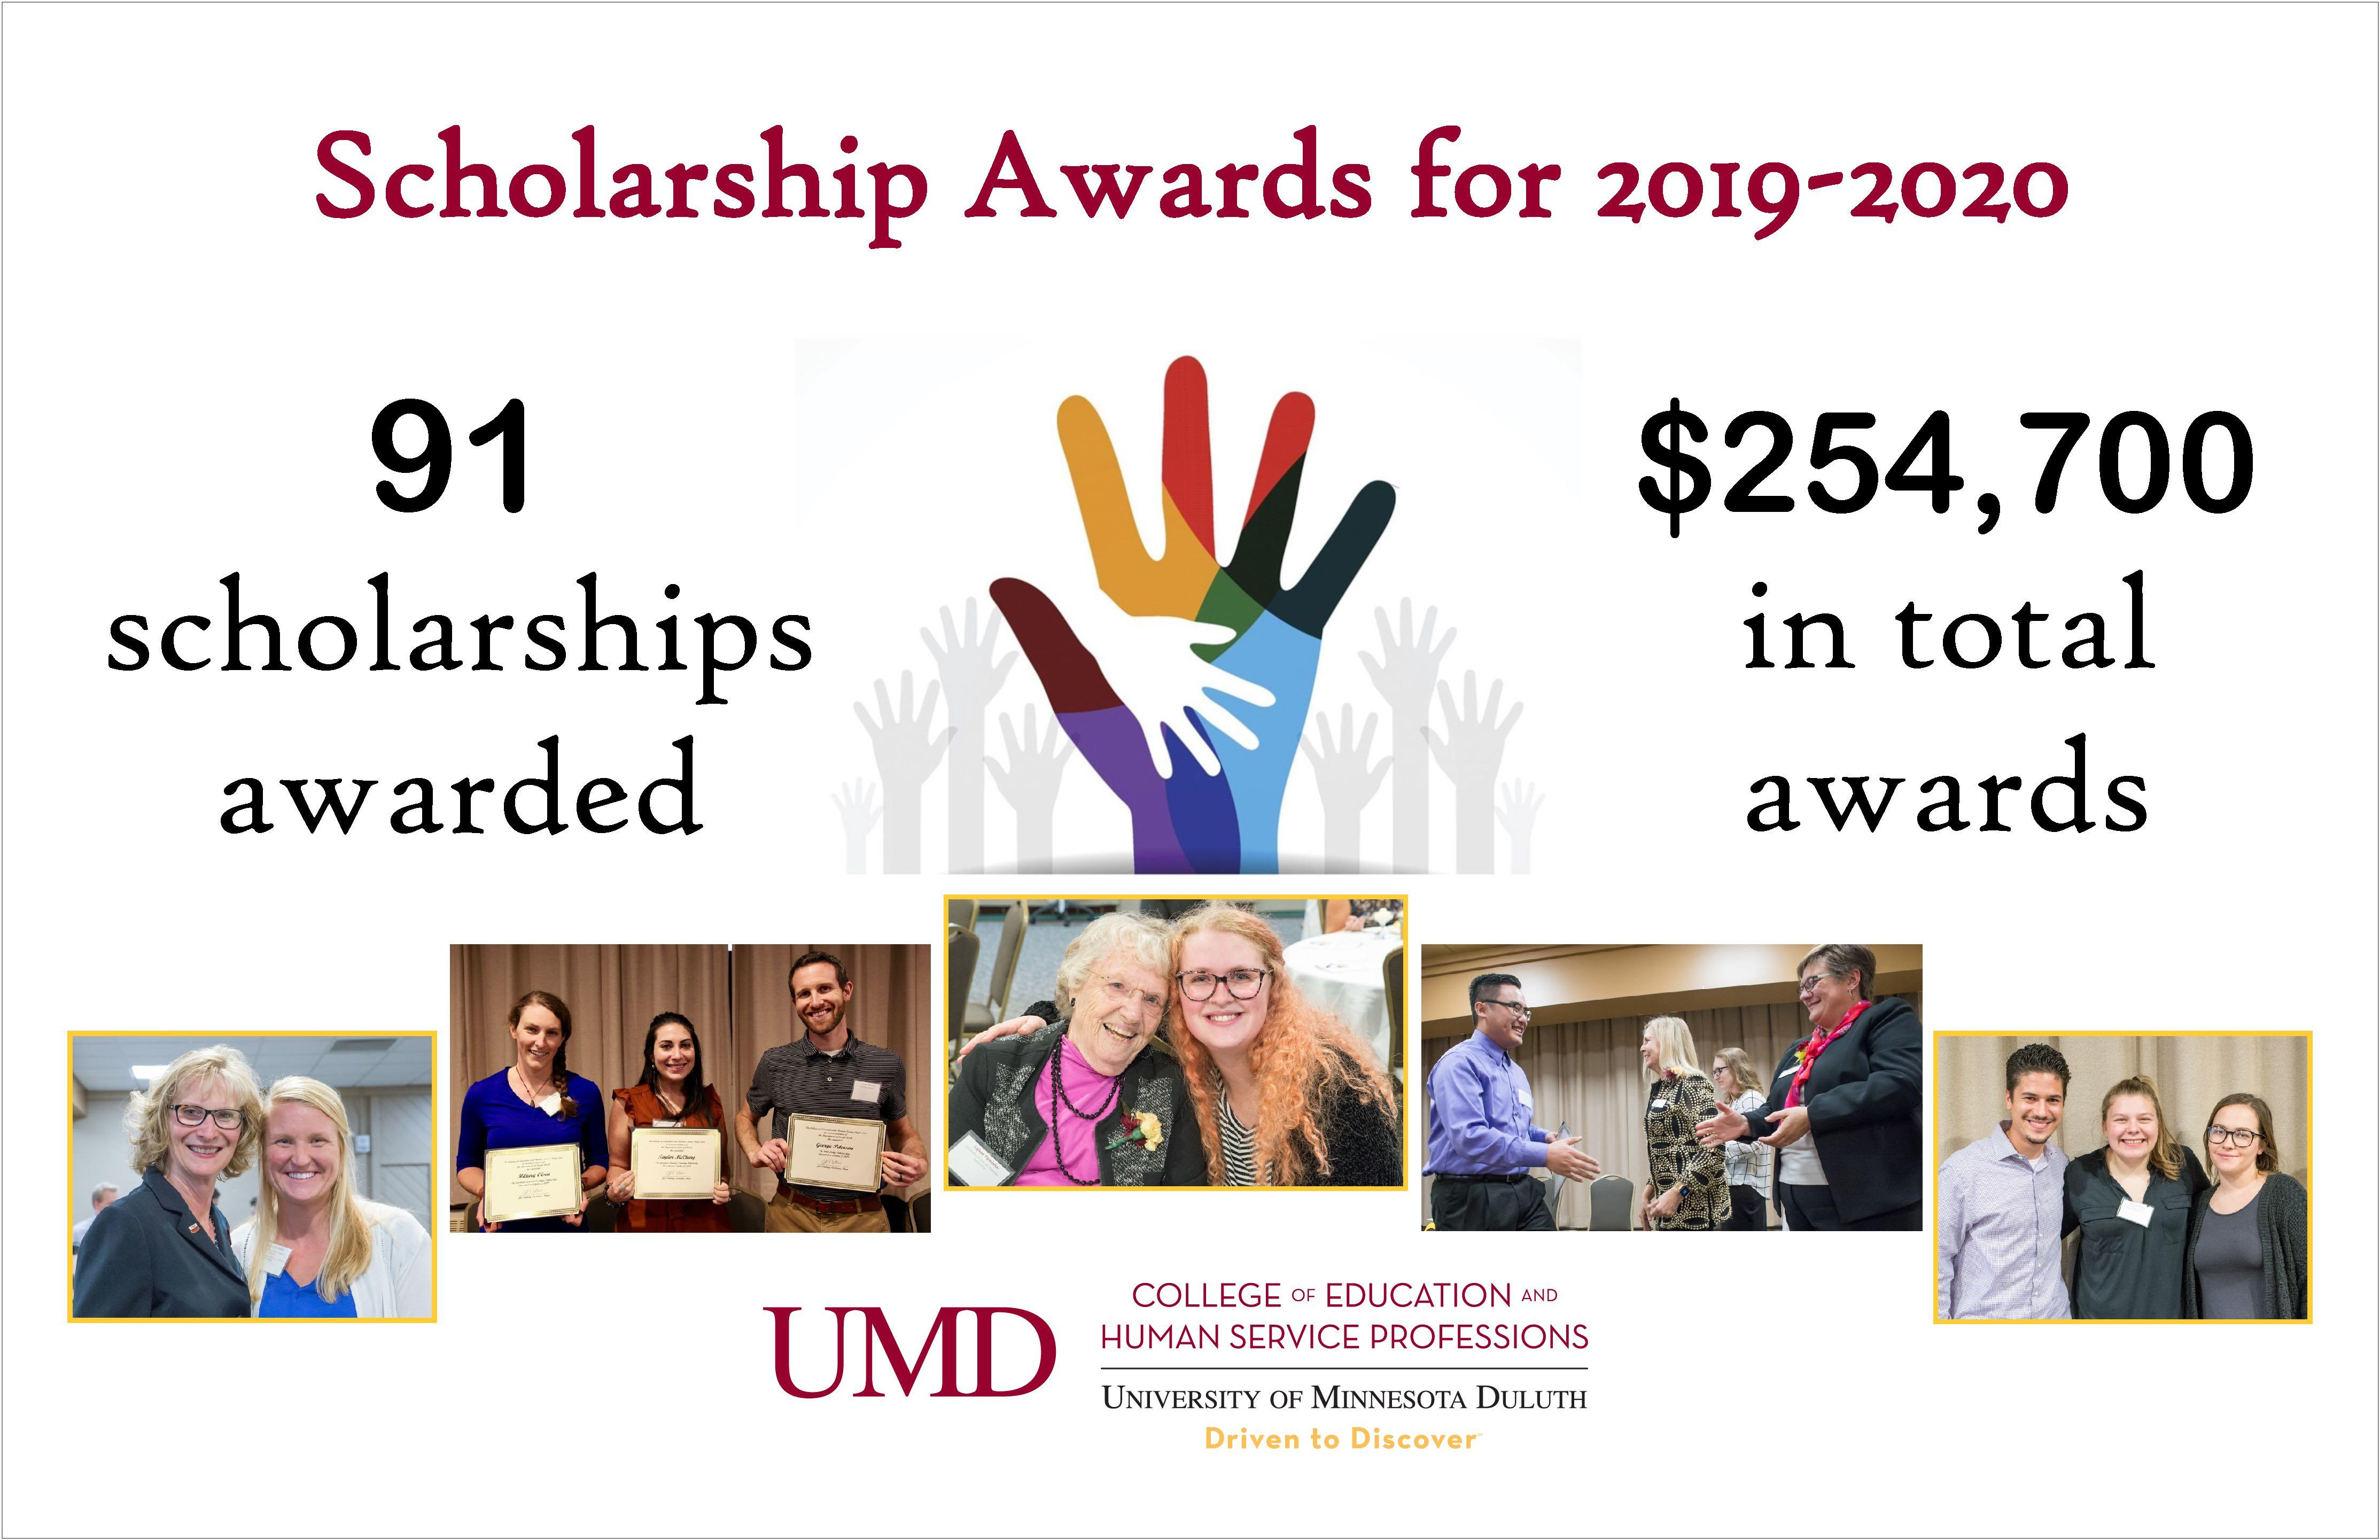 CEHSP Scholarship Awards for 2019-2020. 91 scholarships awarded for a total of $254,700.